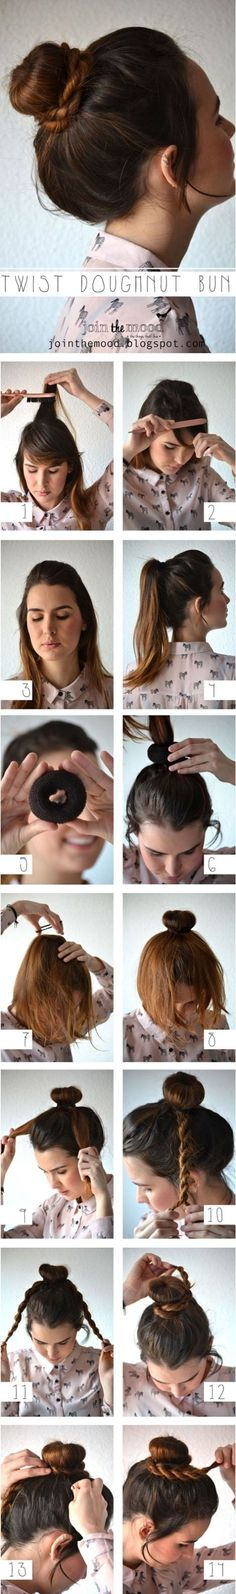 """Sock"" or ""doughnut"" bun with braids. This is the easiest tutorial I found for this. Especially since I have thick, layered hair with fly aways. I'll be practicing this tonight through Friday to perfect it got Saturday's plans!! (: Excited! Wish me luck!"